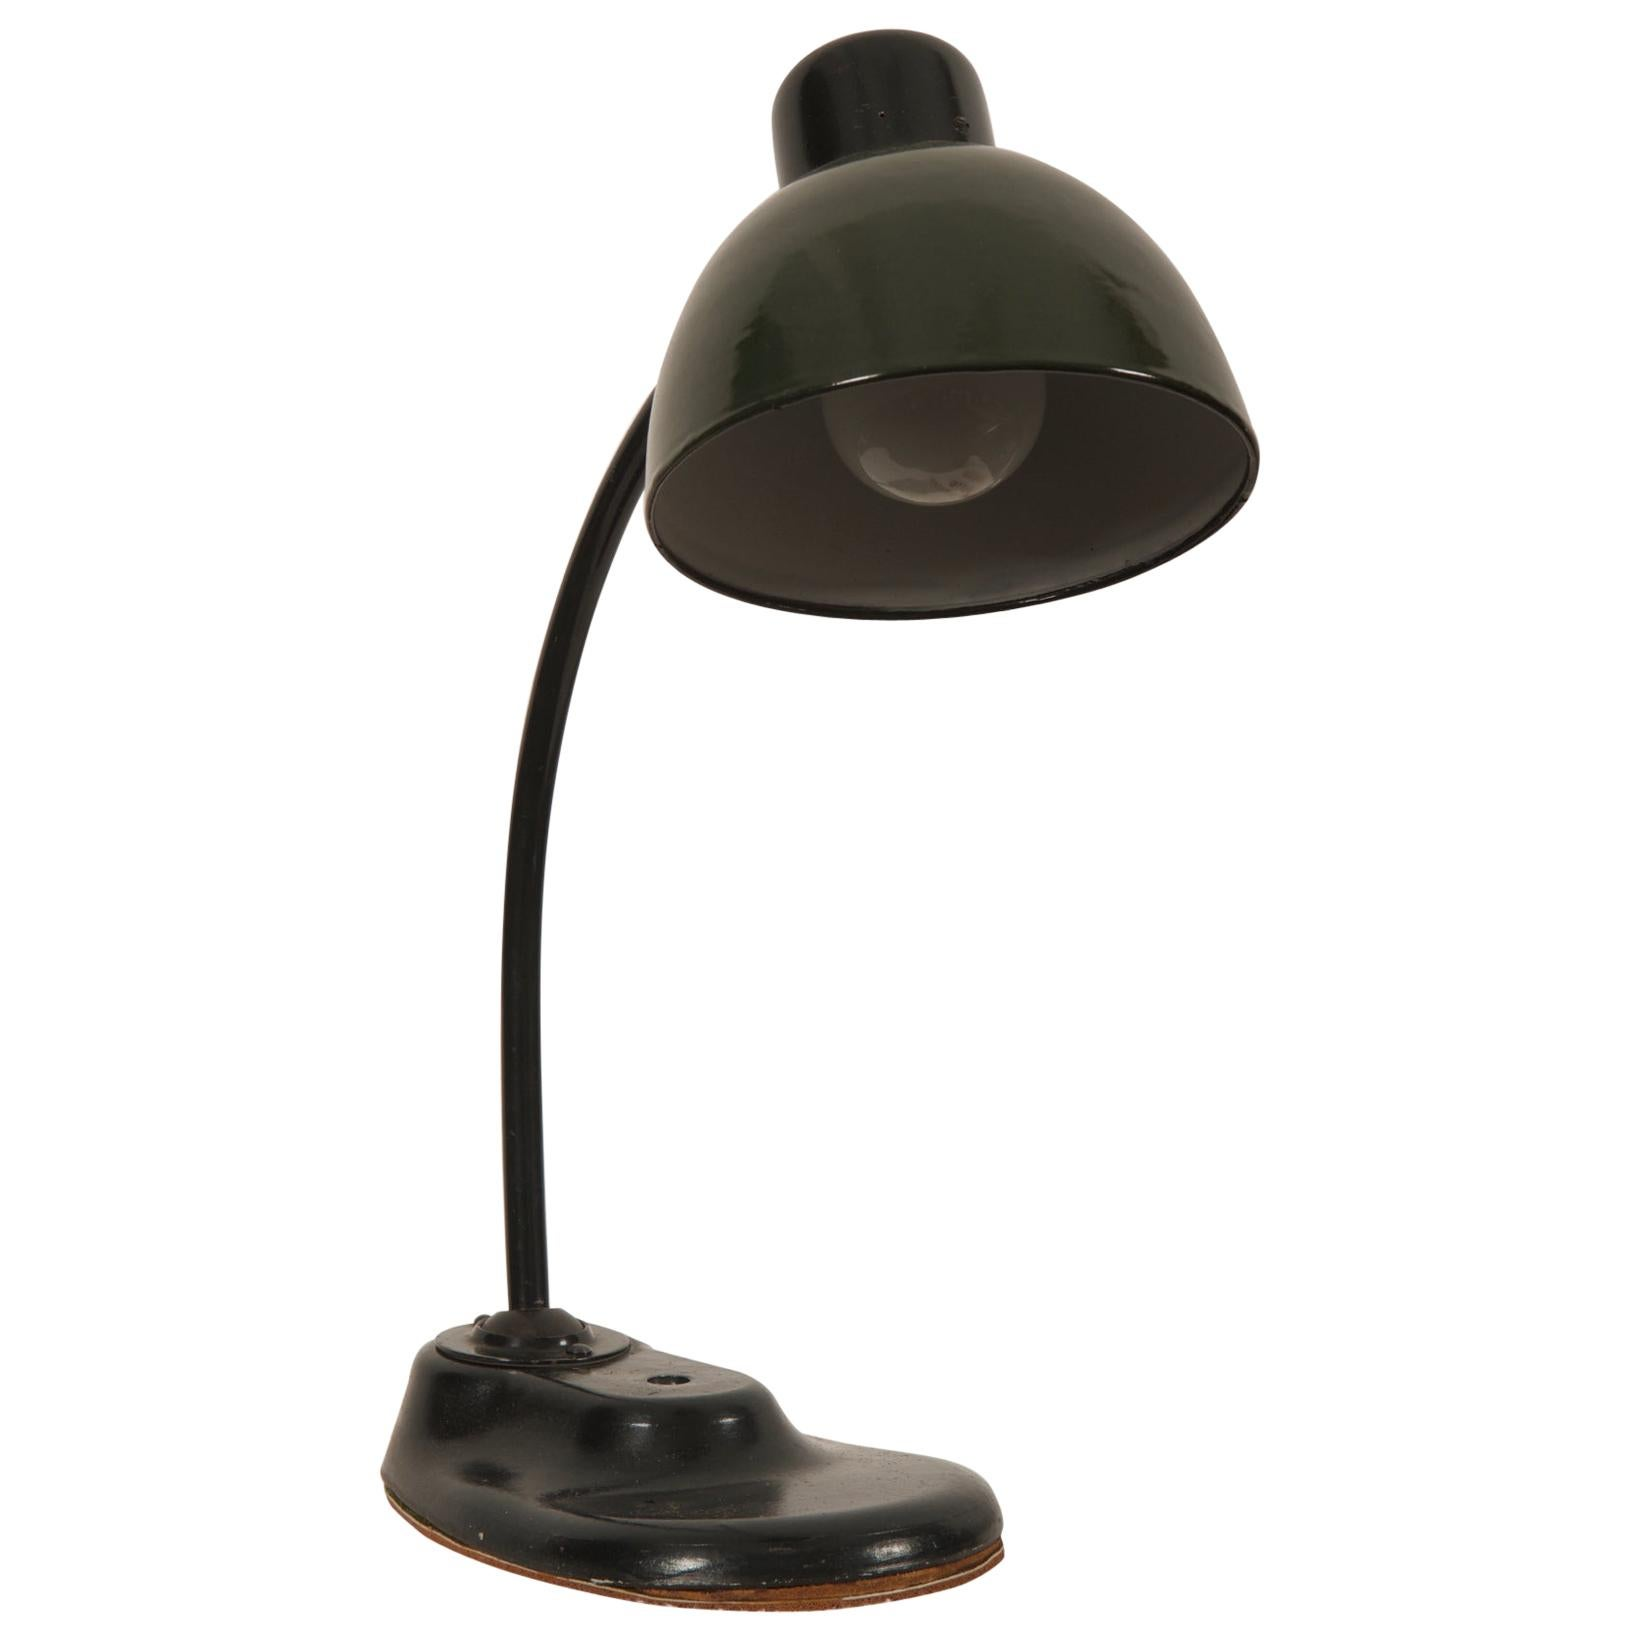 Bauhaus Table or Desk Lamp Designed by Marianne Brandt